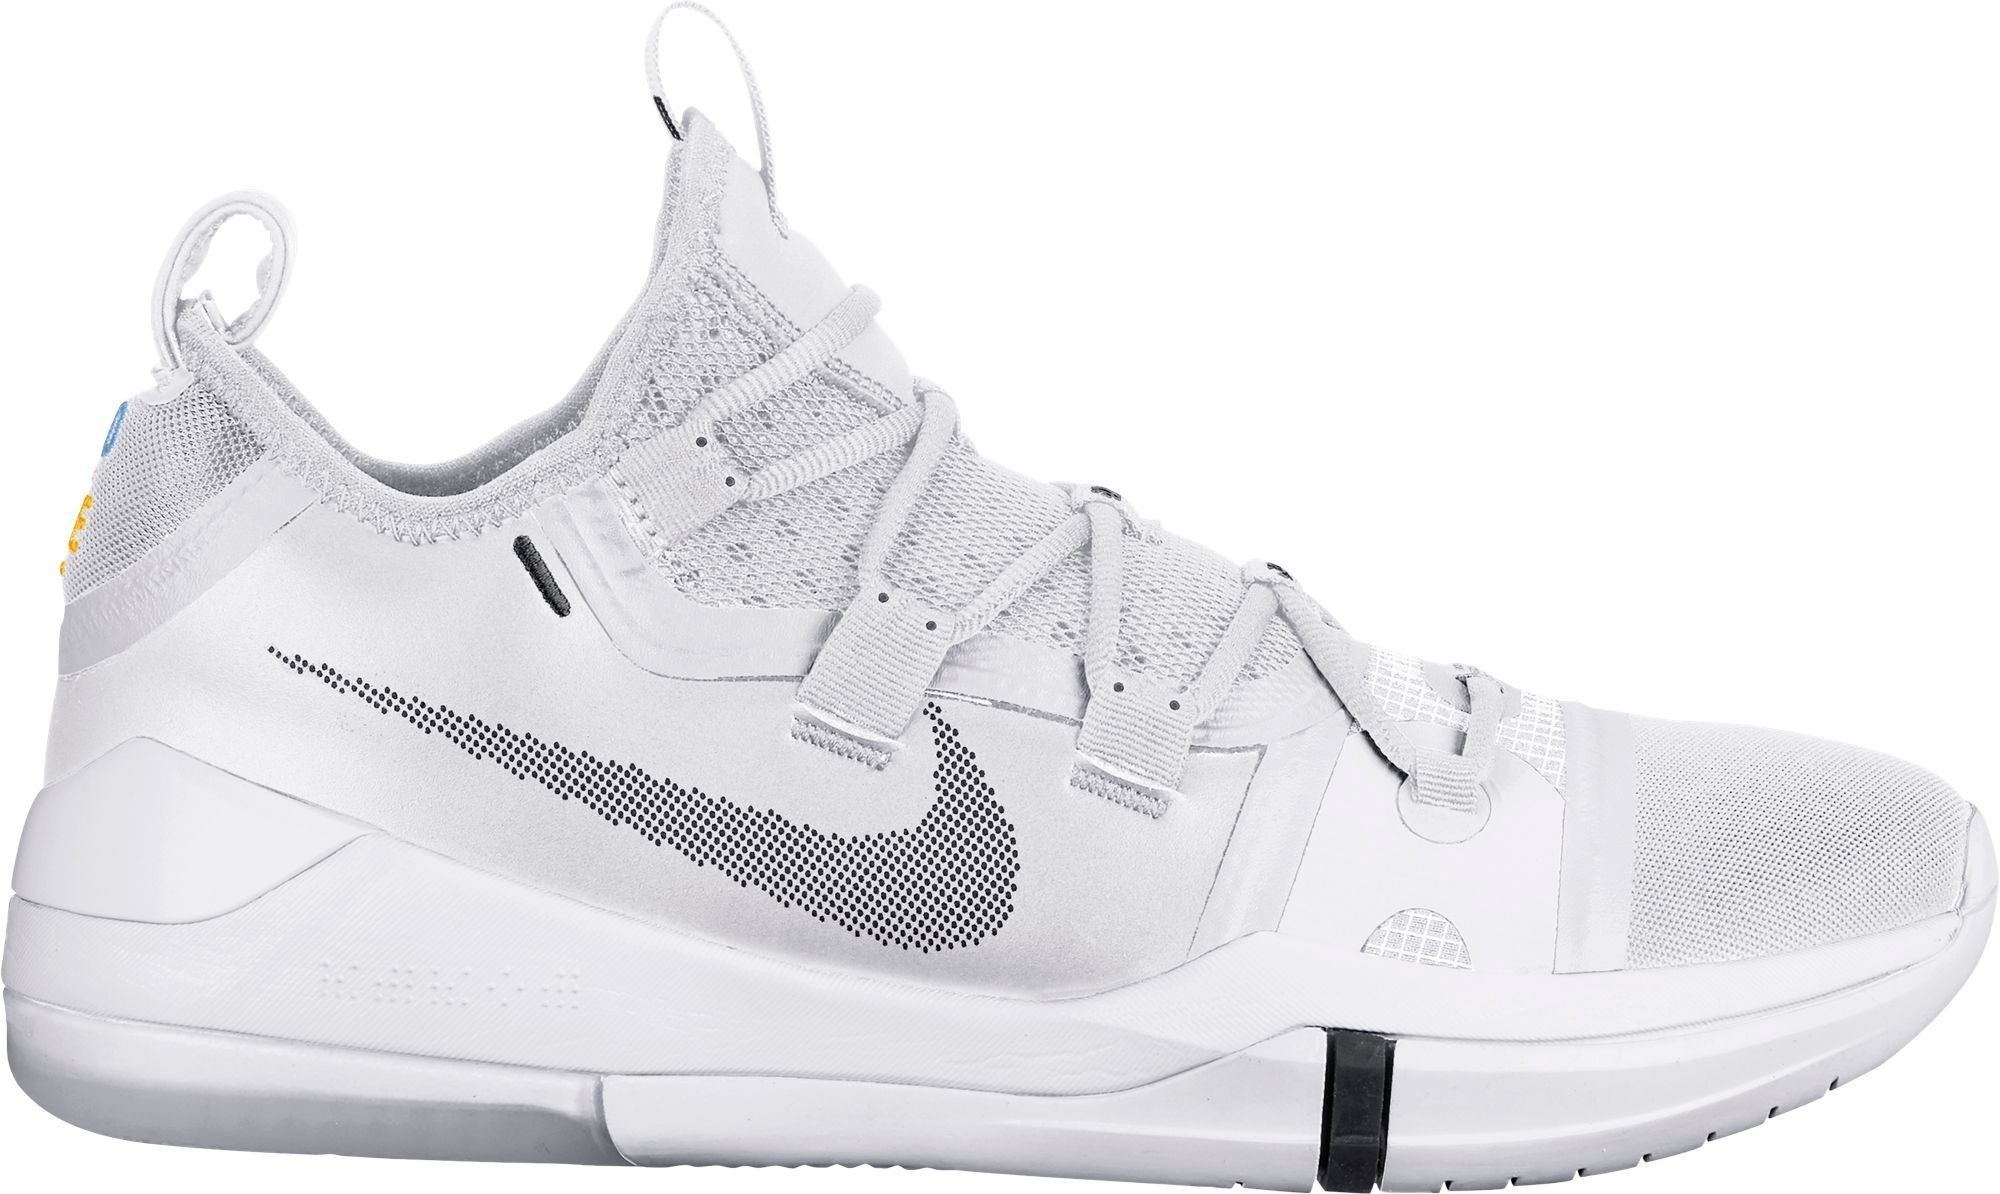 new product c8d6d 7ba84 Nike Men s Kobe A.D. TB Basketball Shoes, White